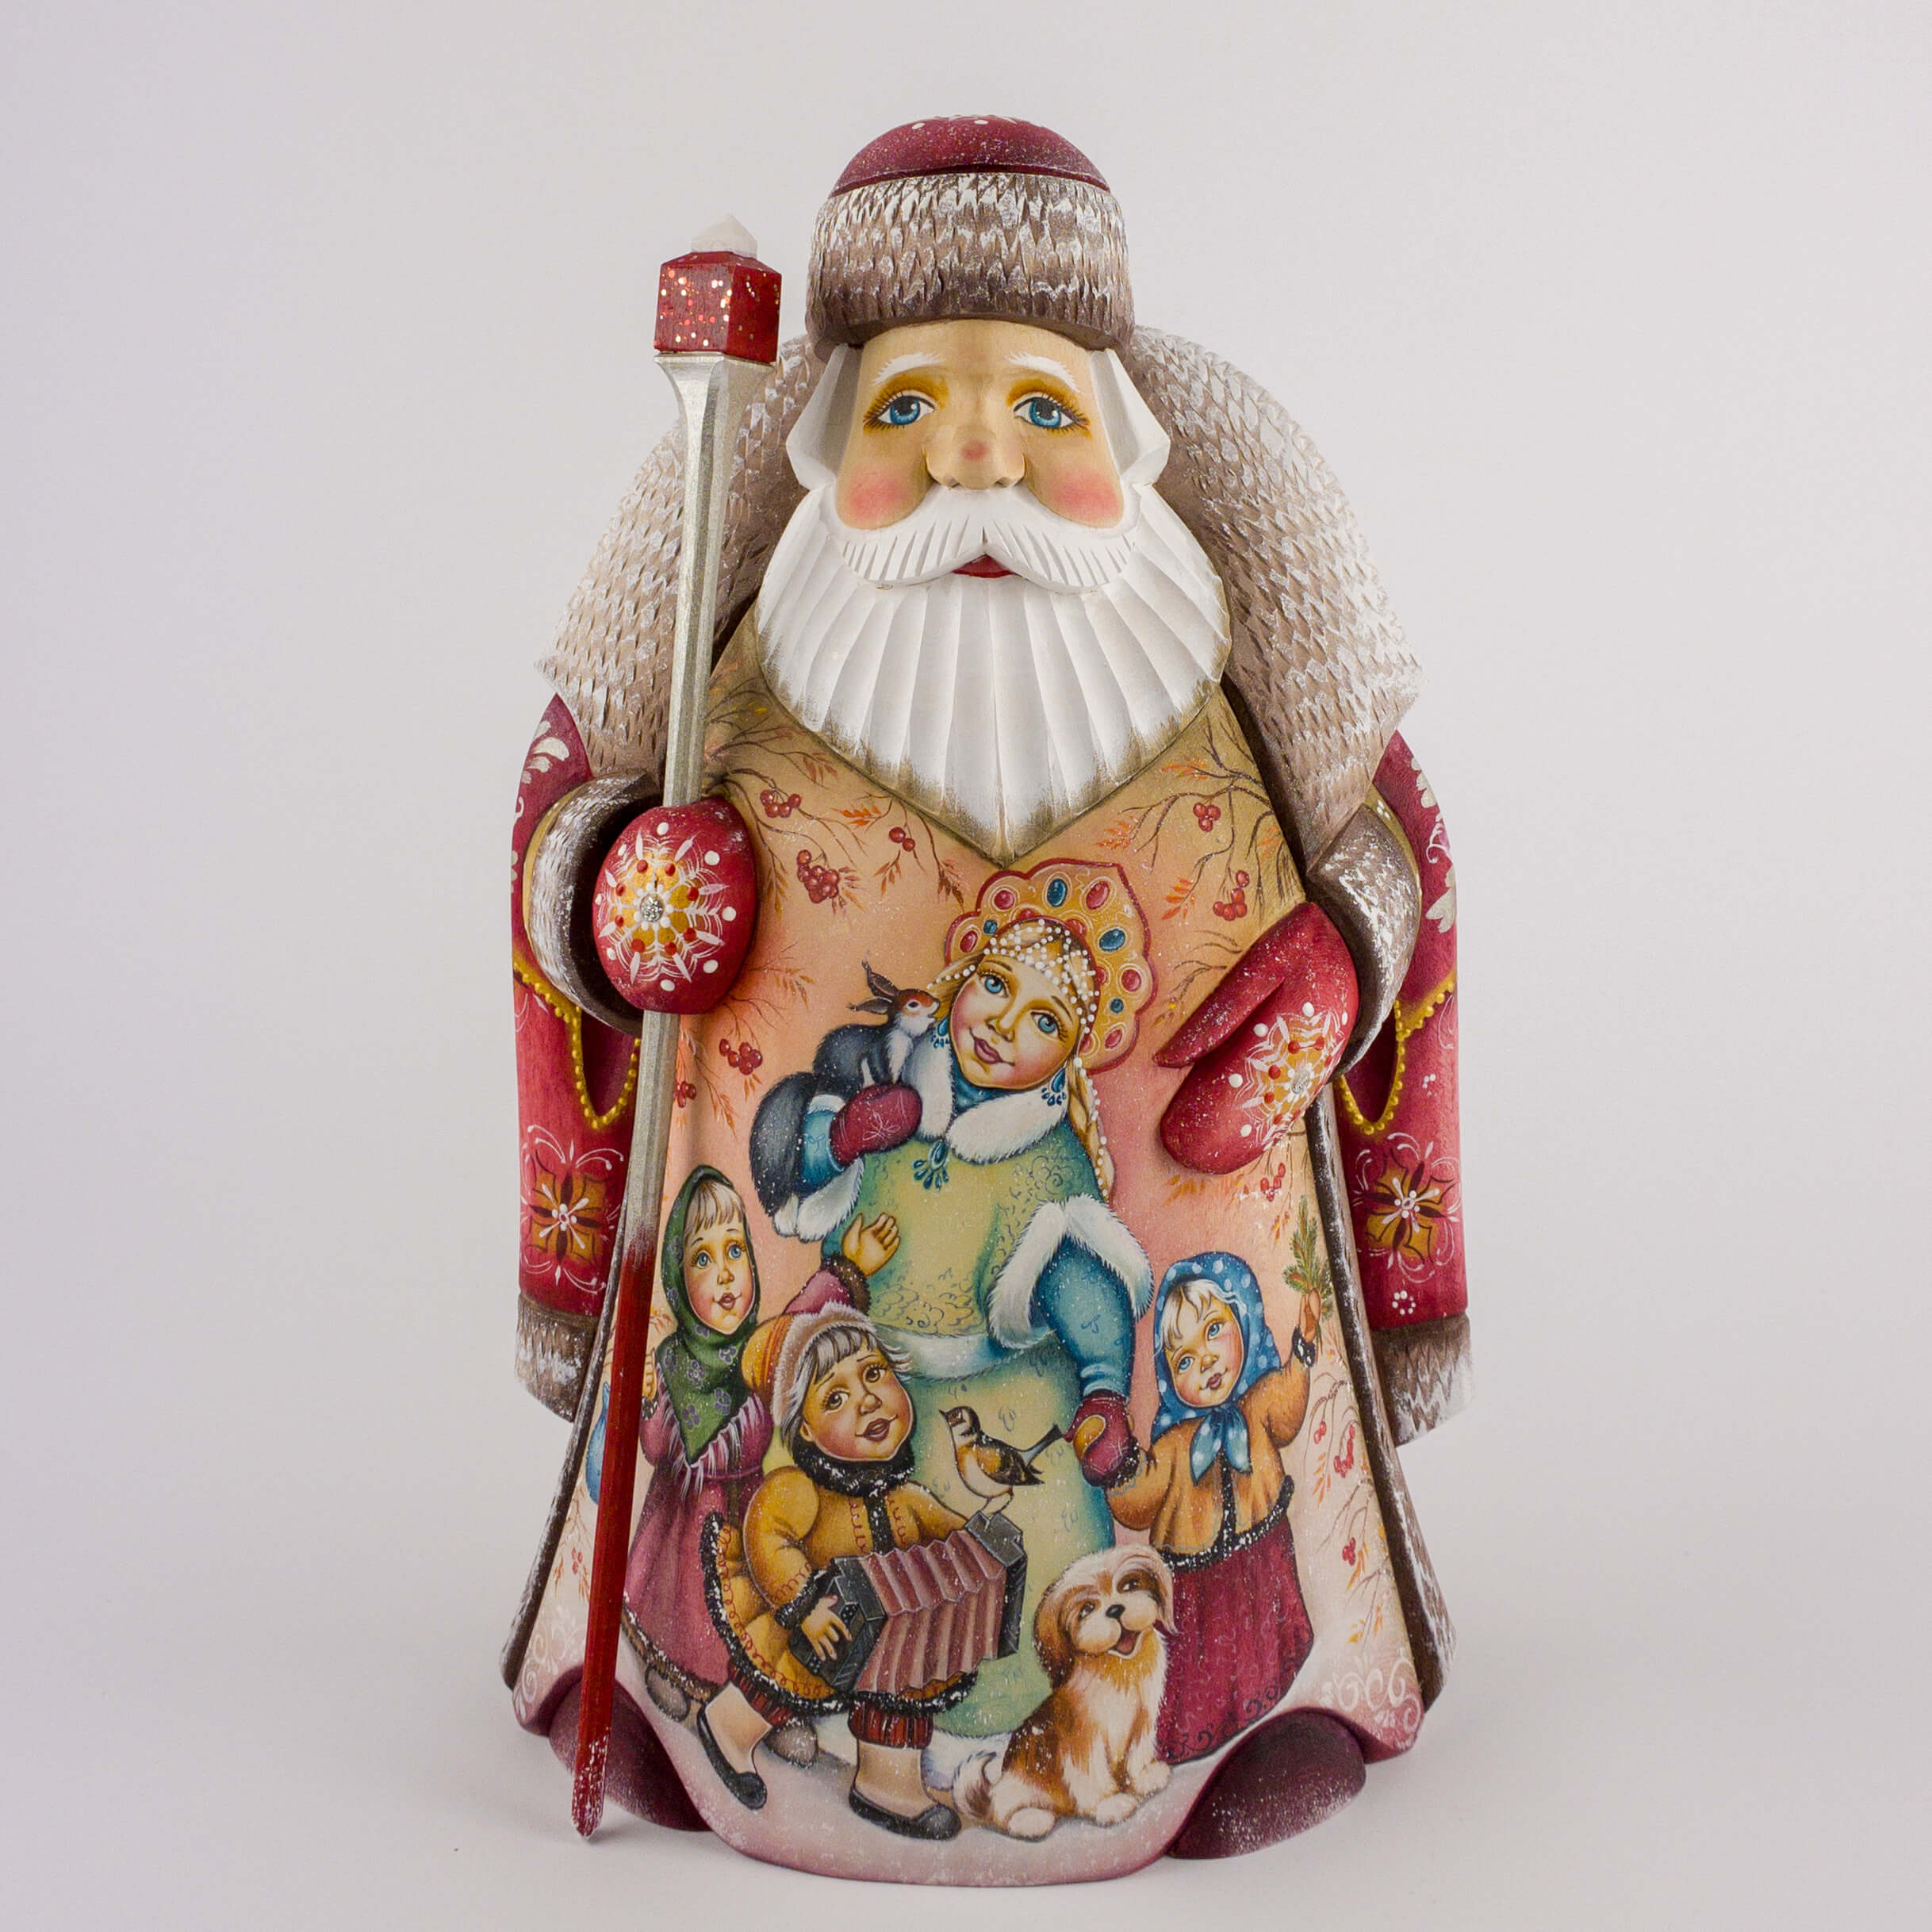 #LR0006 - Large wooden Santa figure